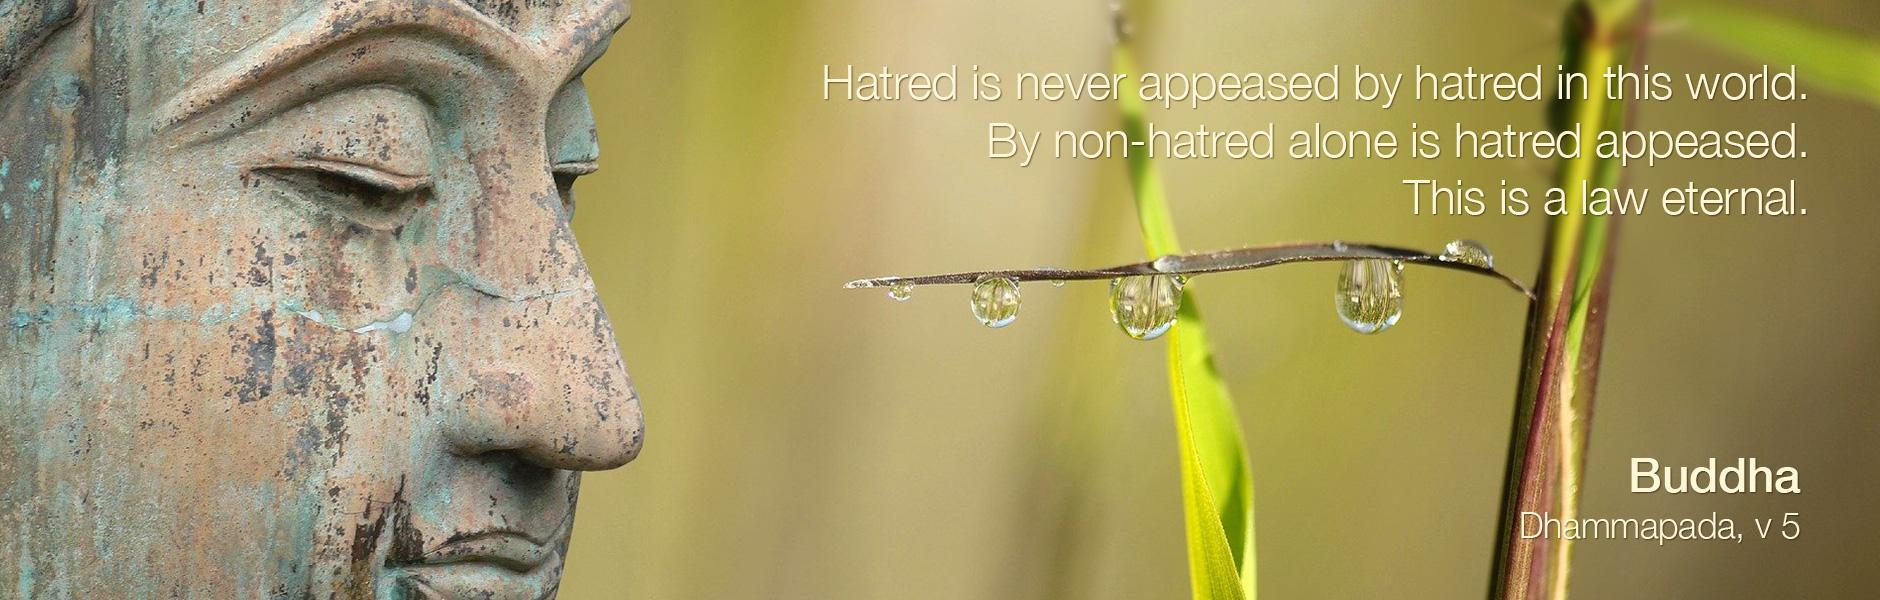 Hatred is never appeased by hatred in this world. By non-hatred alone is hatred appeased. This is a law eternal.